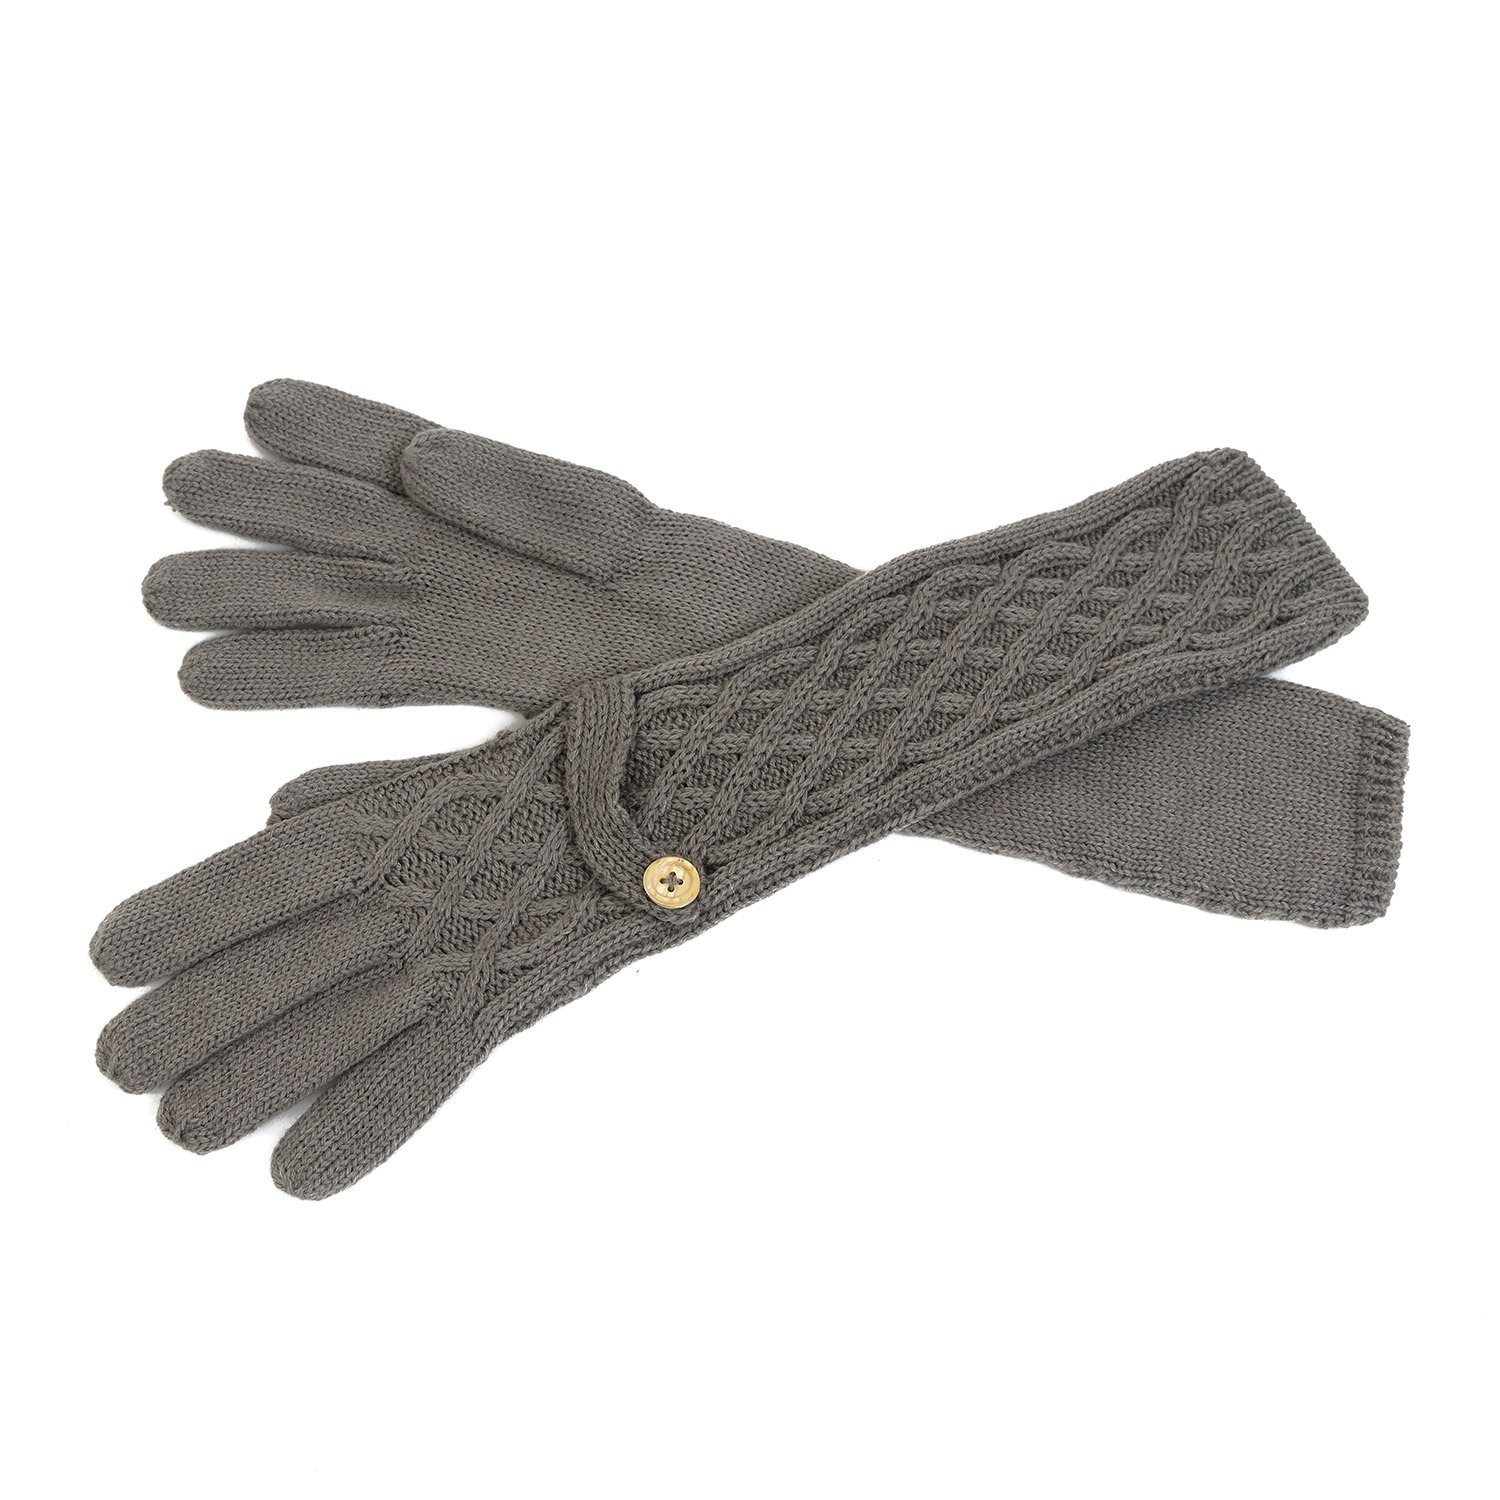 Cozy Design Women's Woolen and Cony Hair Knitted Long Gloves Grey